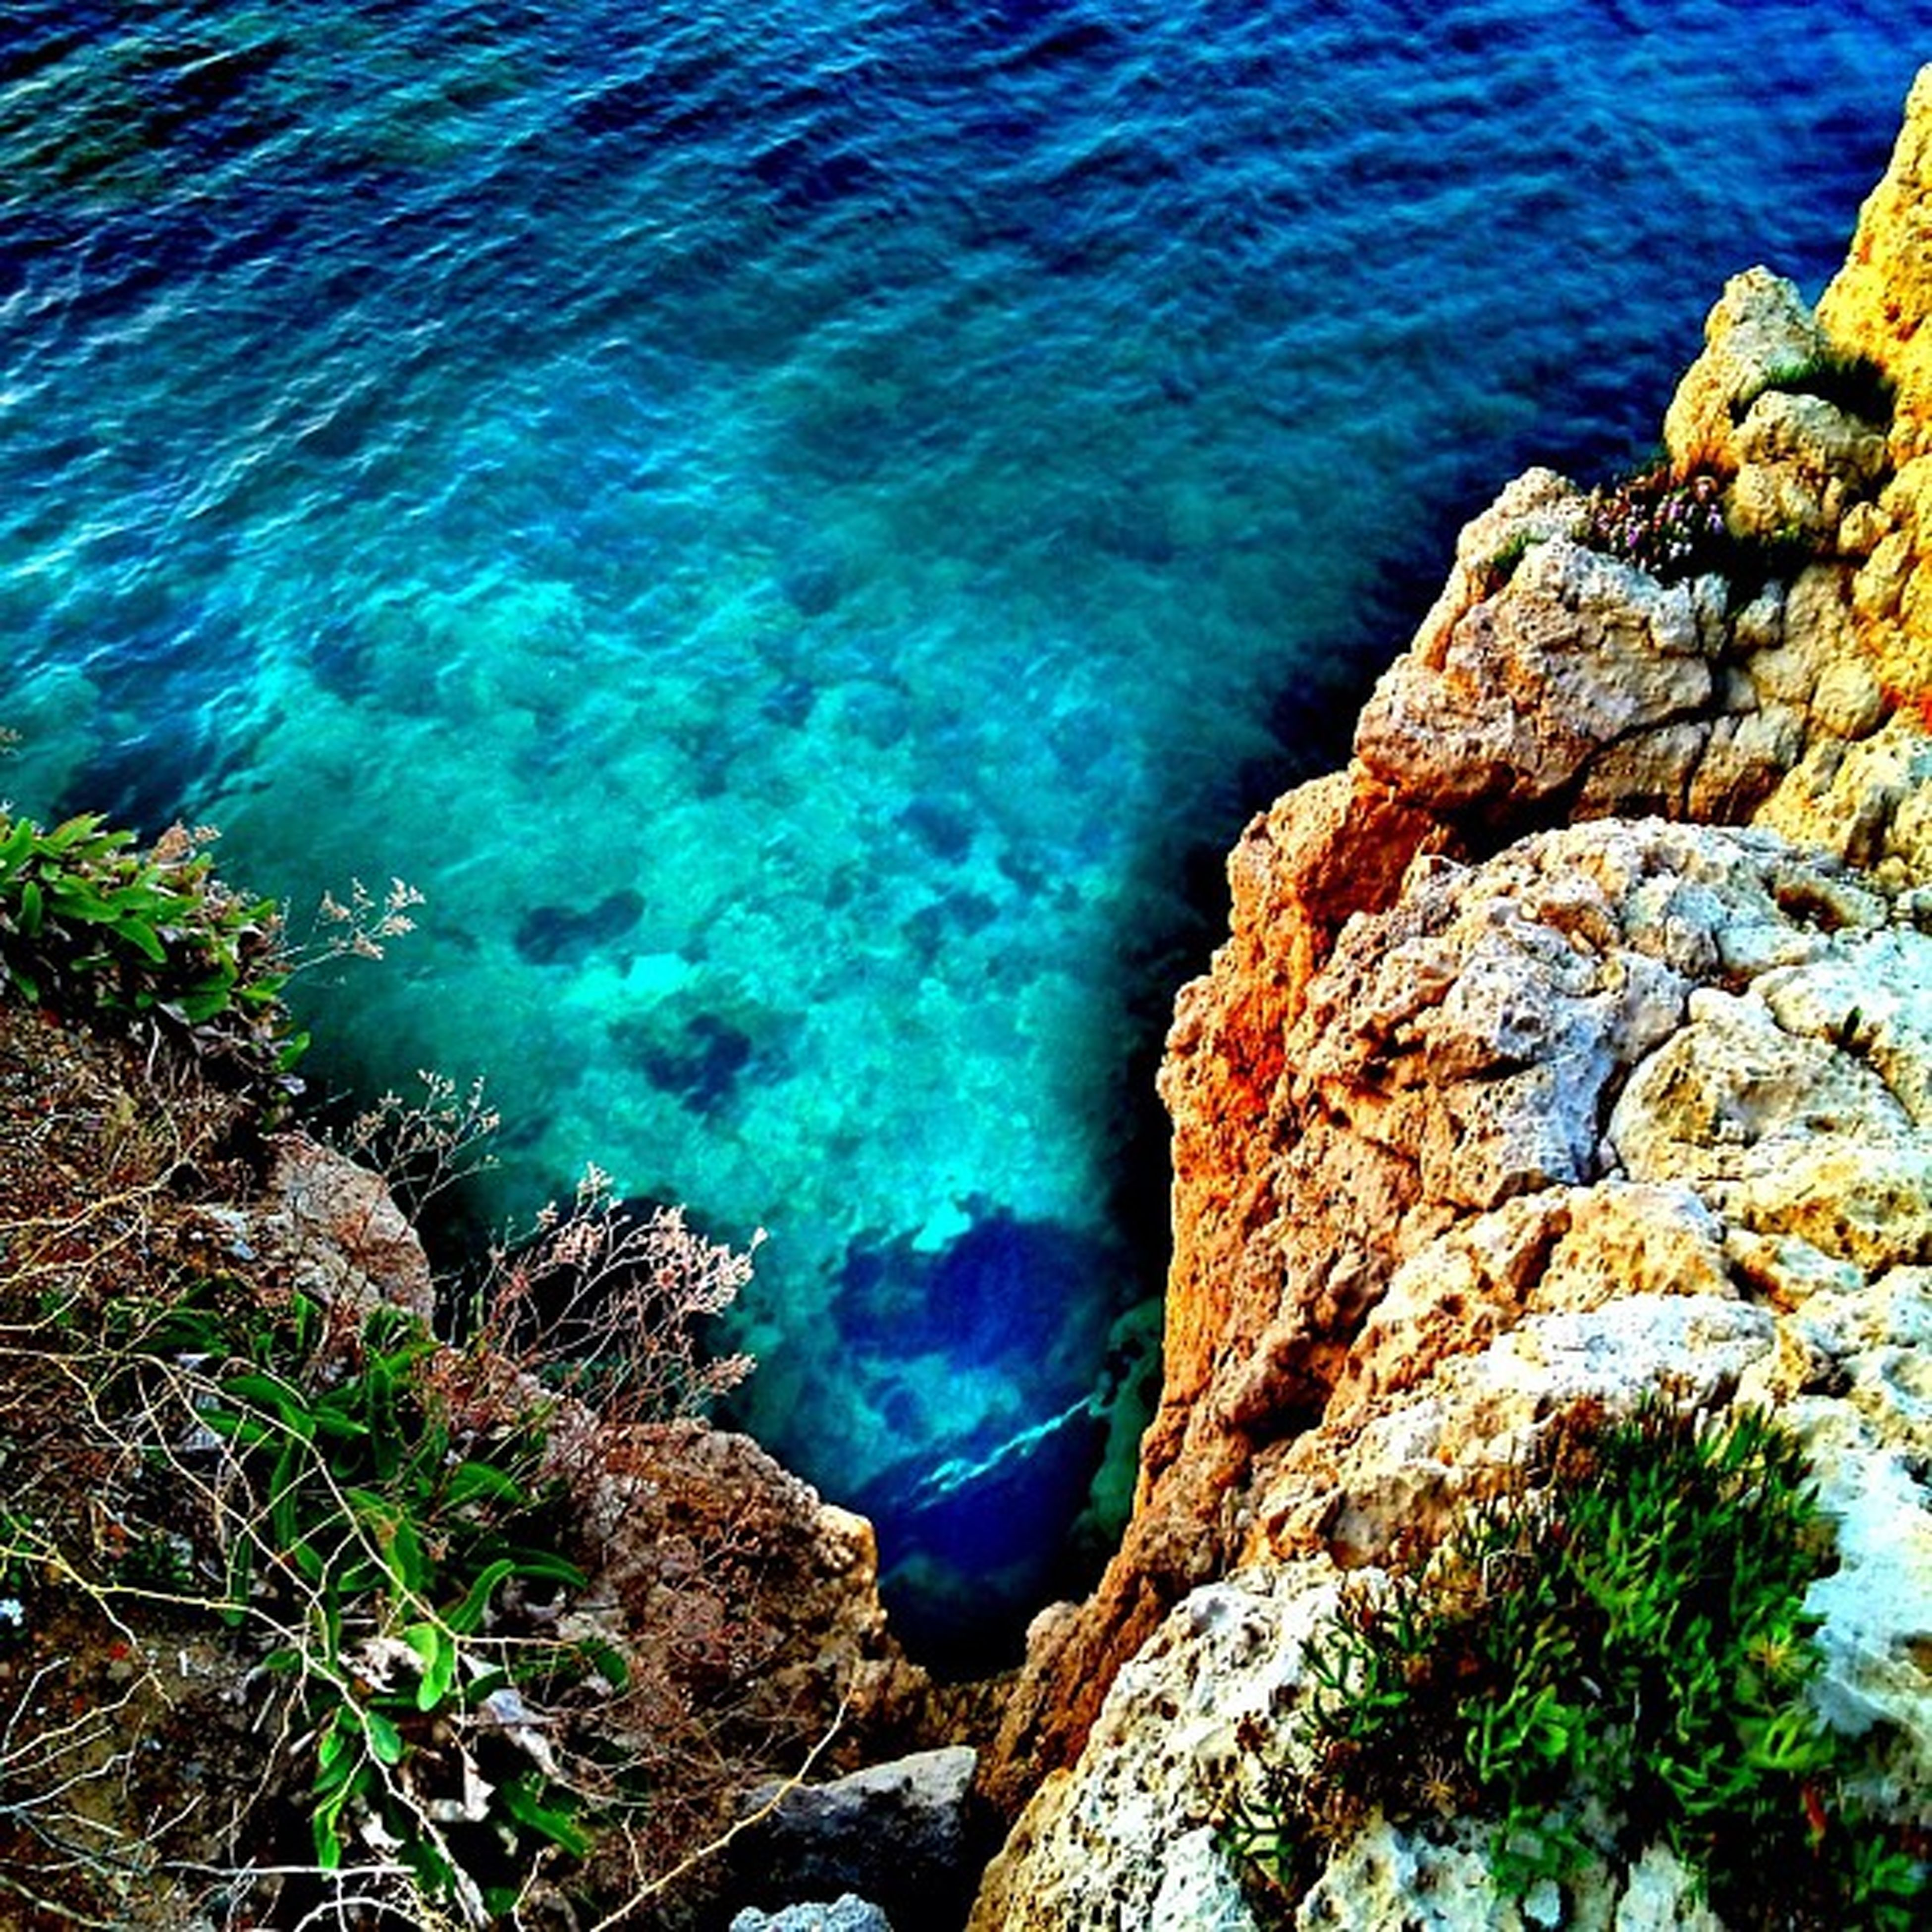 water, sea, blue, high angle view, rock - object, tranquility, rock formation, beauty in nature, nature, tranquil scene, scenics, rock, turquoise colored, cliff, day, rippled, idyllic, no people, outdoors, coastline